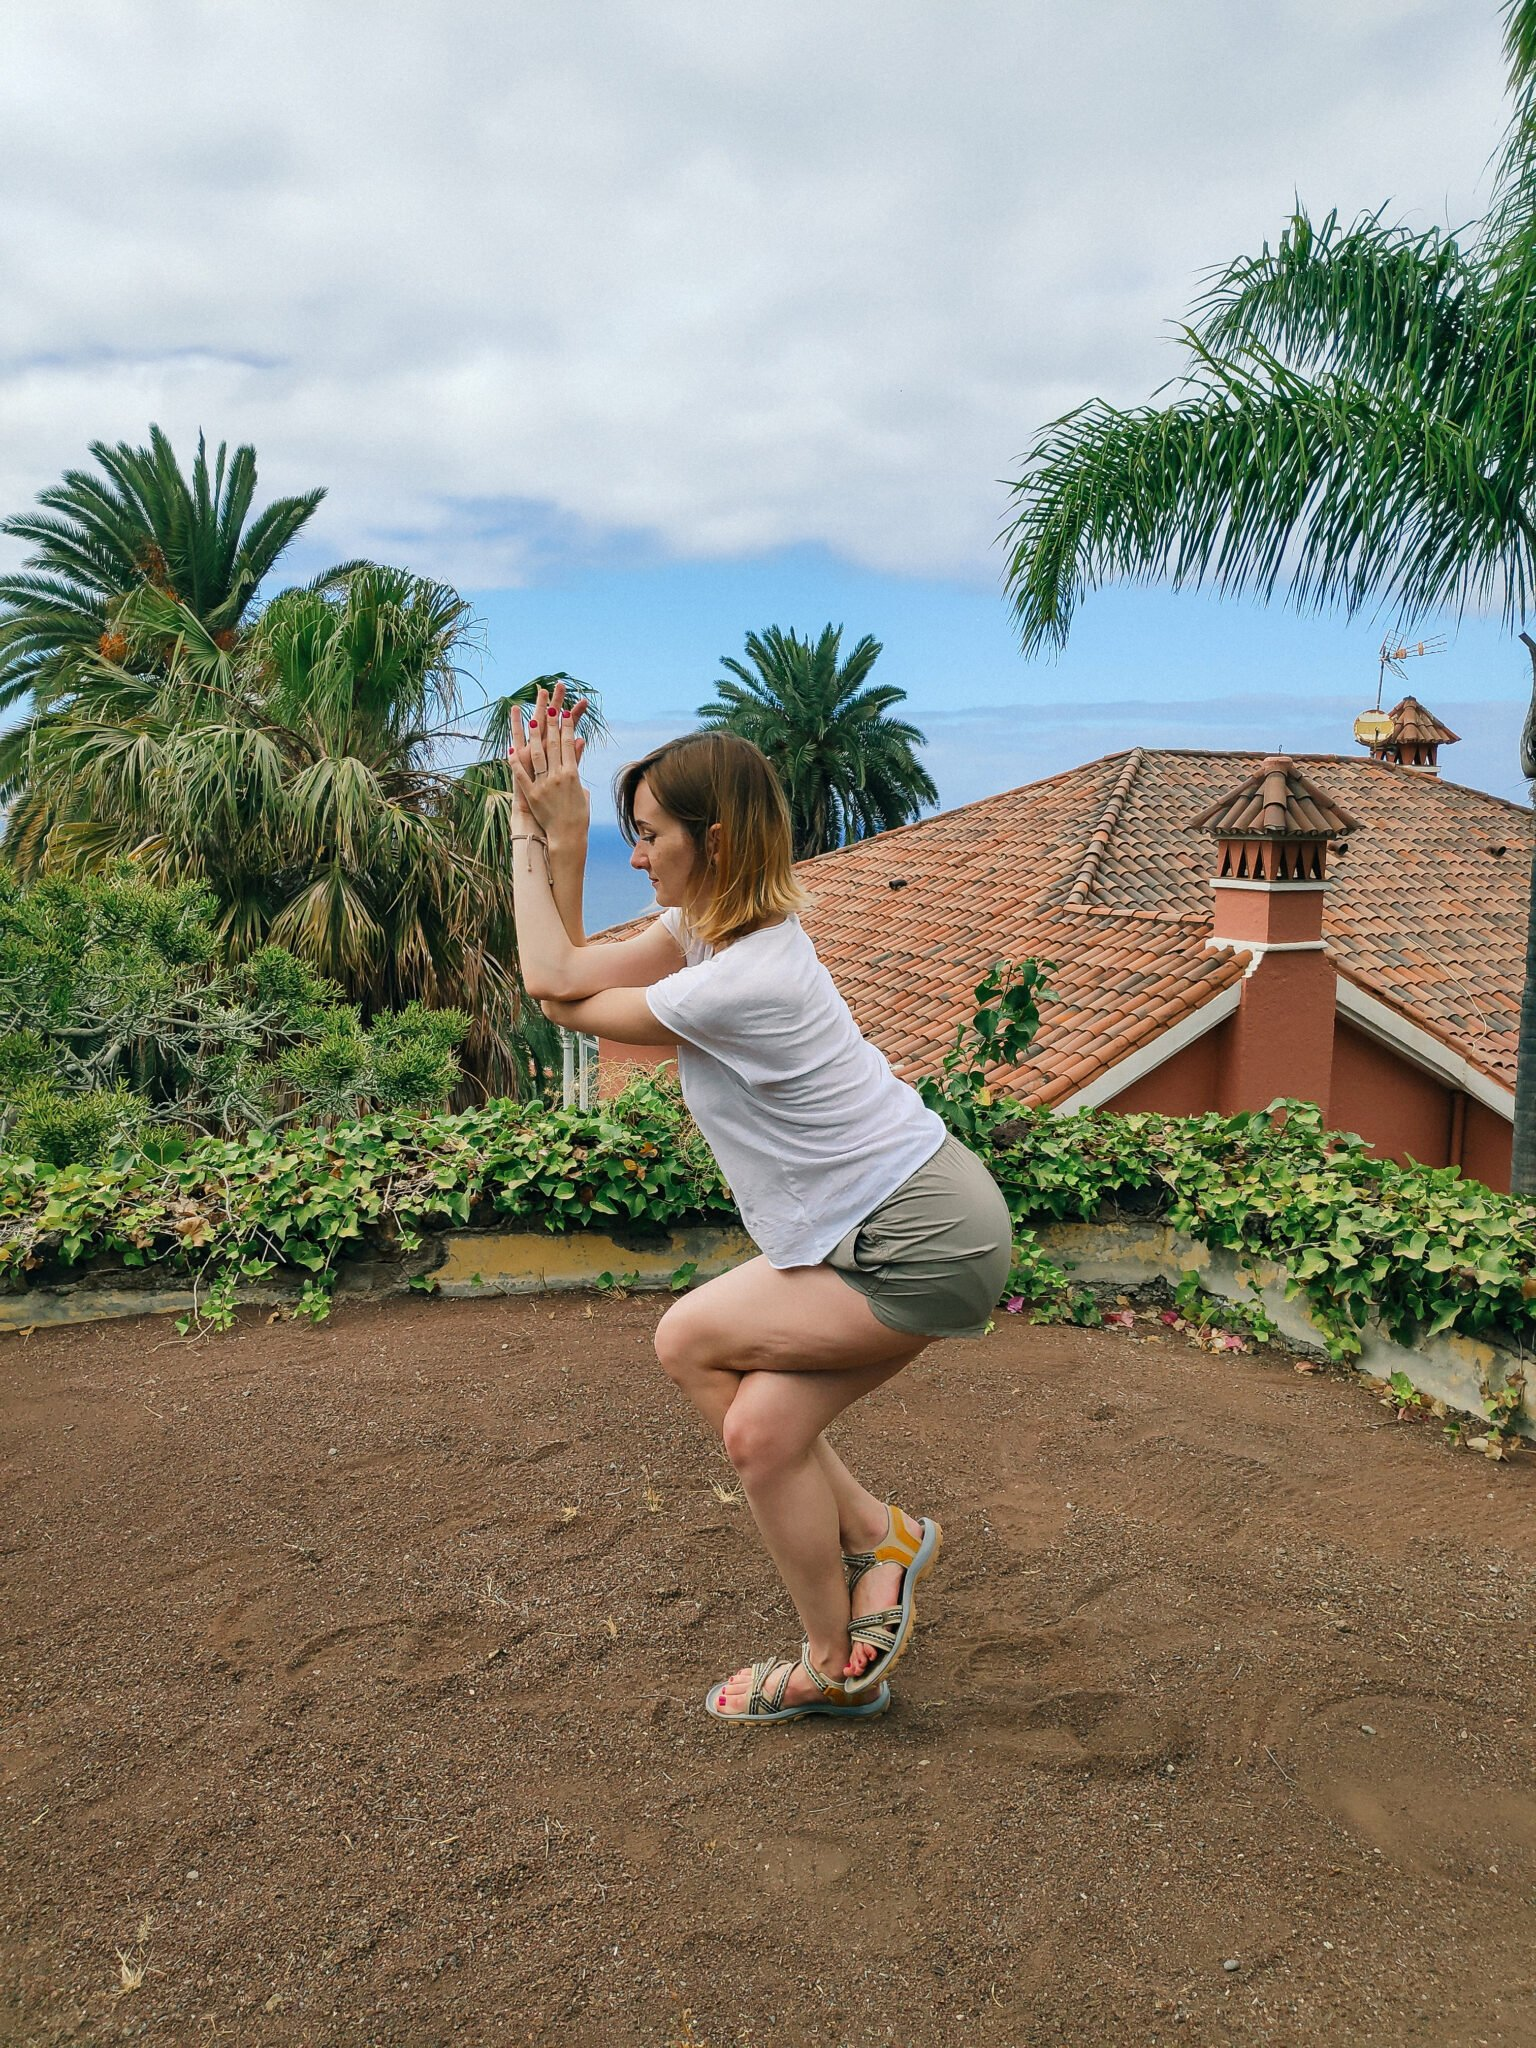 Eagle Pose/ Garudasana